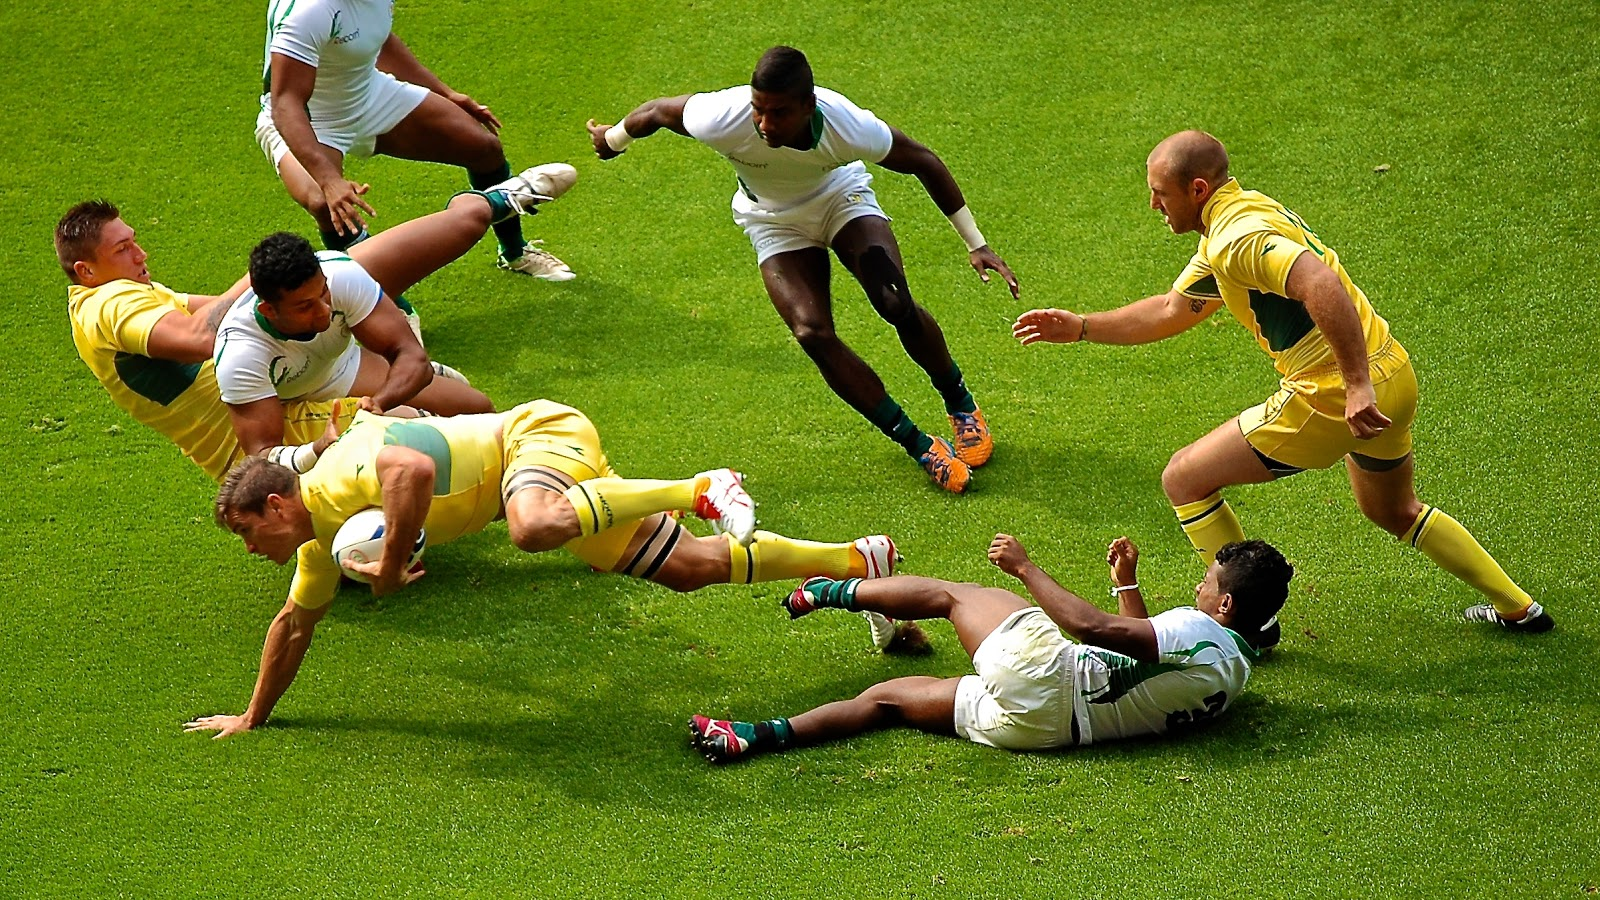 Rugby sevens at the 2014 Commonwealth Games